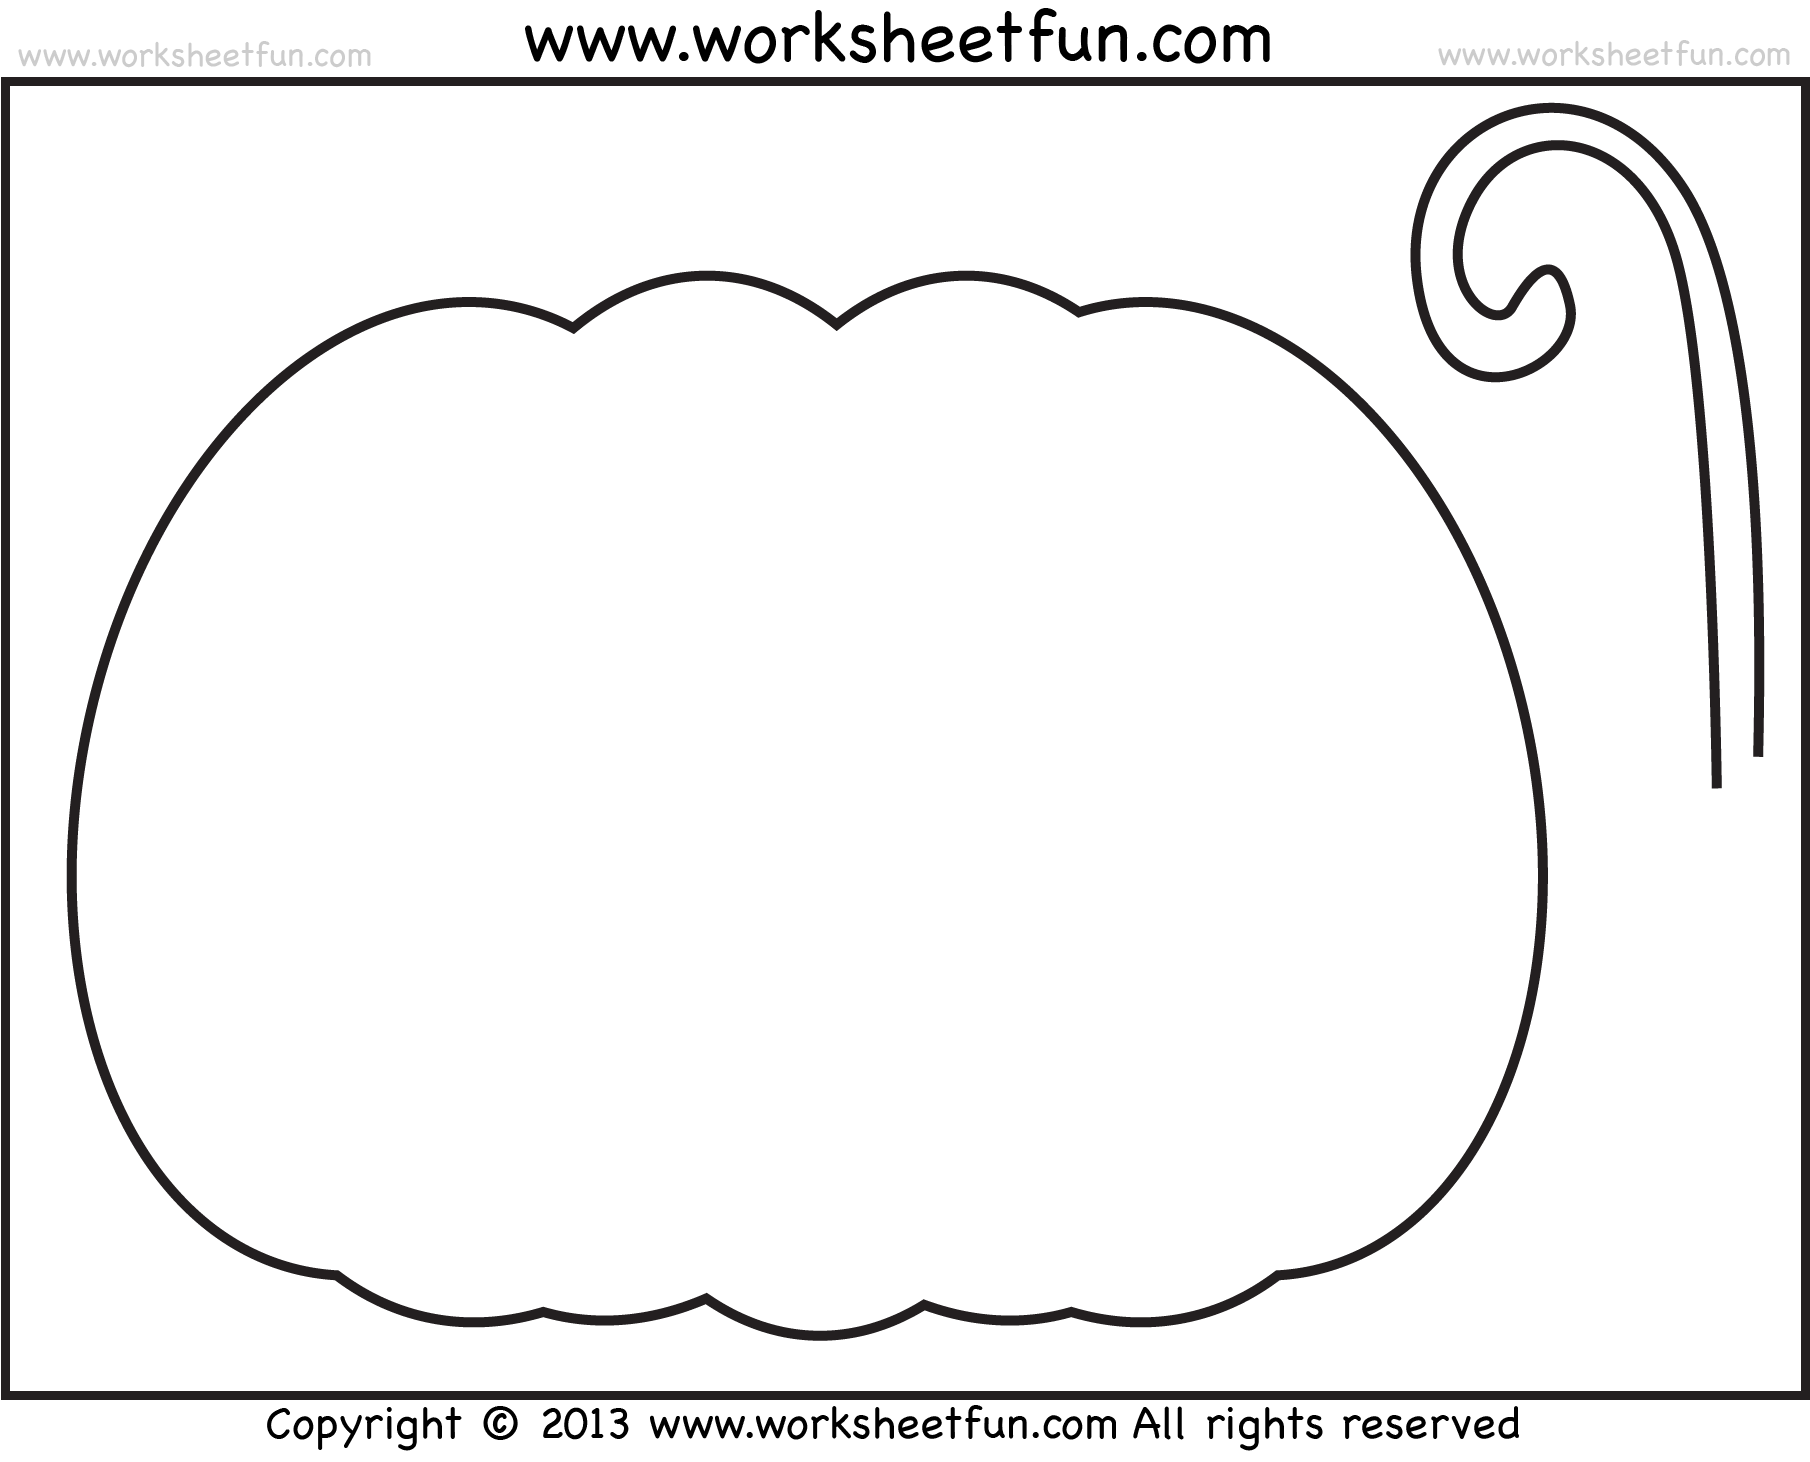 Halloween Printable Stencils For Pumpkin 2 Worksheets Free Printable Worksheets Worksheetfun